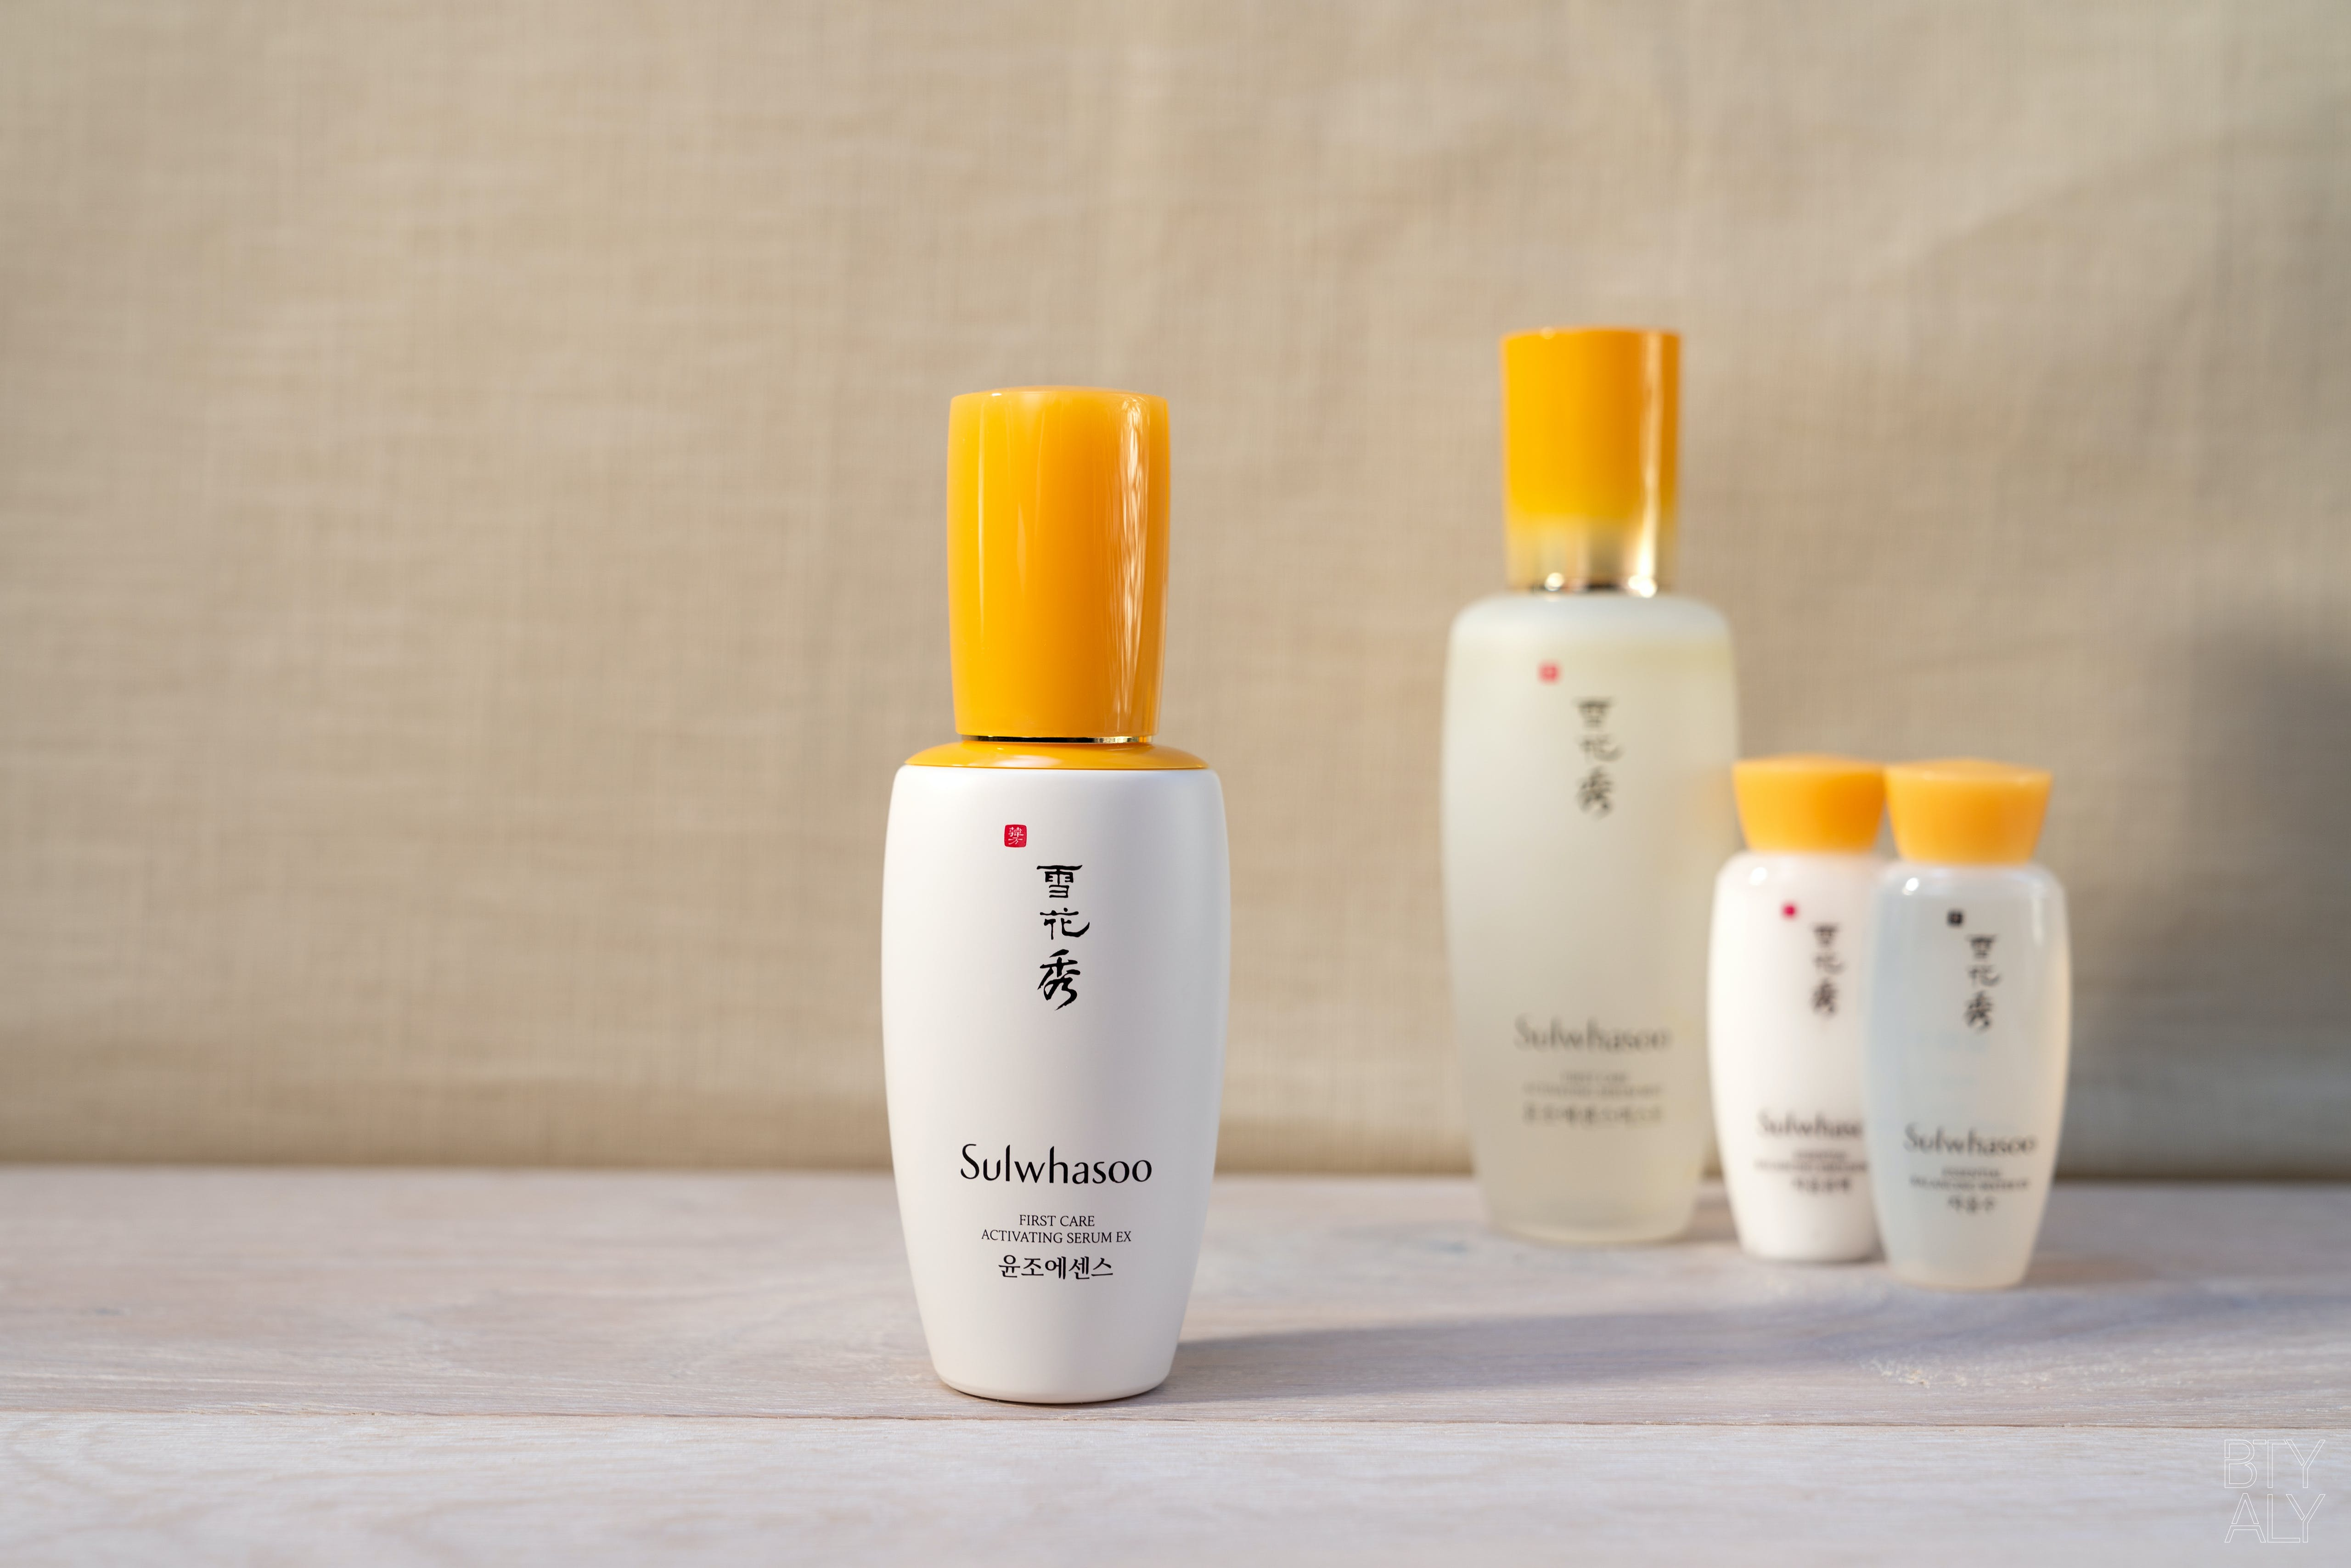 Sulwhasoo First Care Activating Serum EX, Sulwhasoo First Care Activating Serum Mist EX, Essential Balancing Water EX, Essential Balancing Emulsion EX